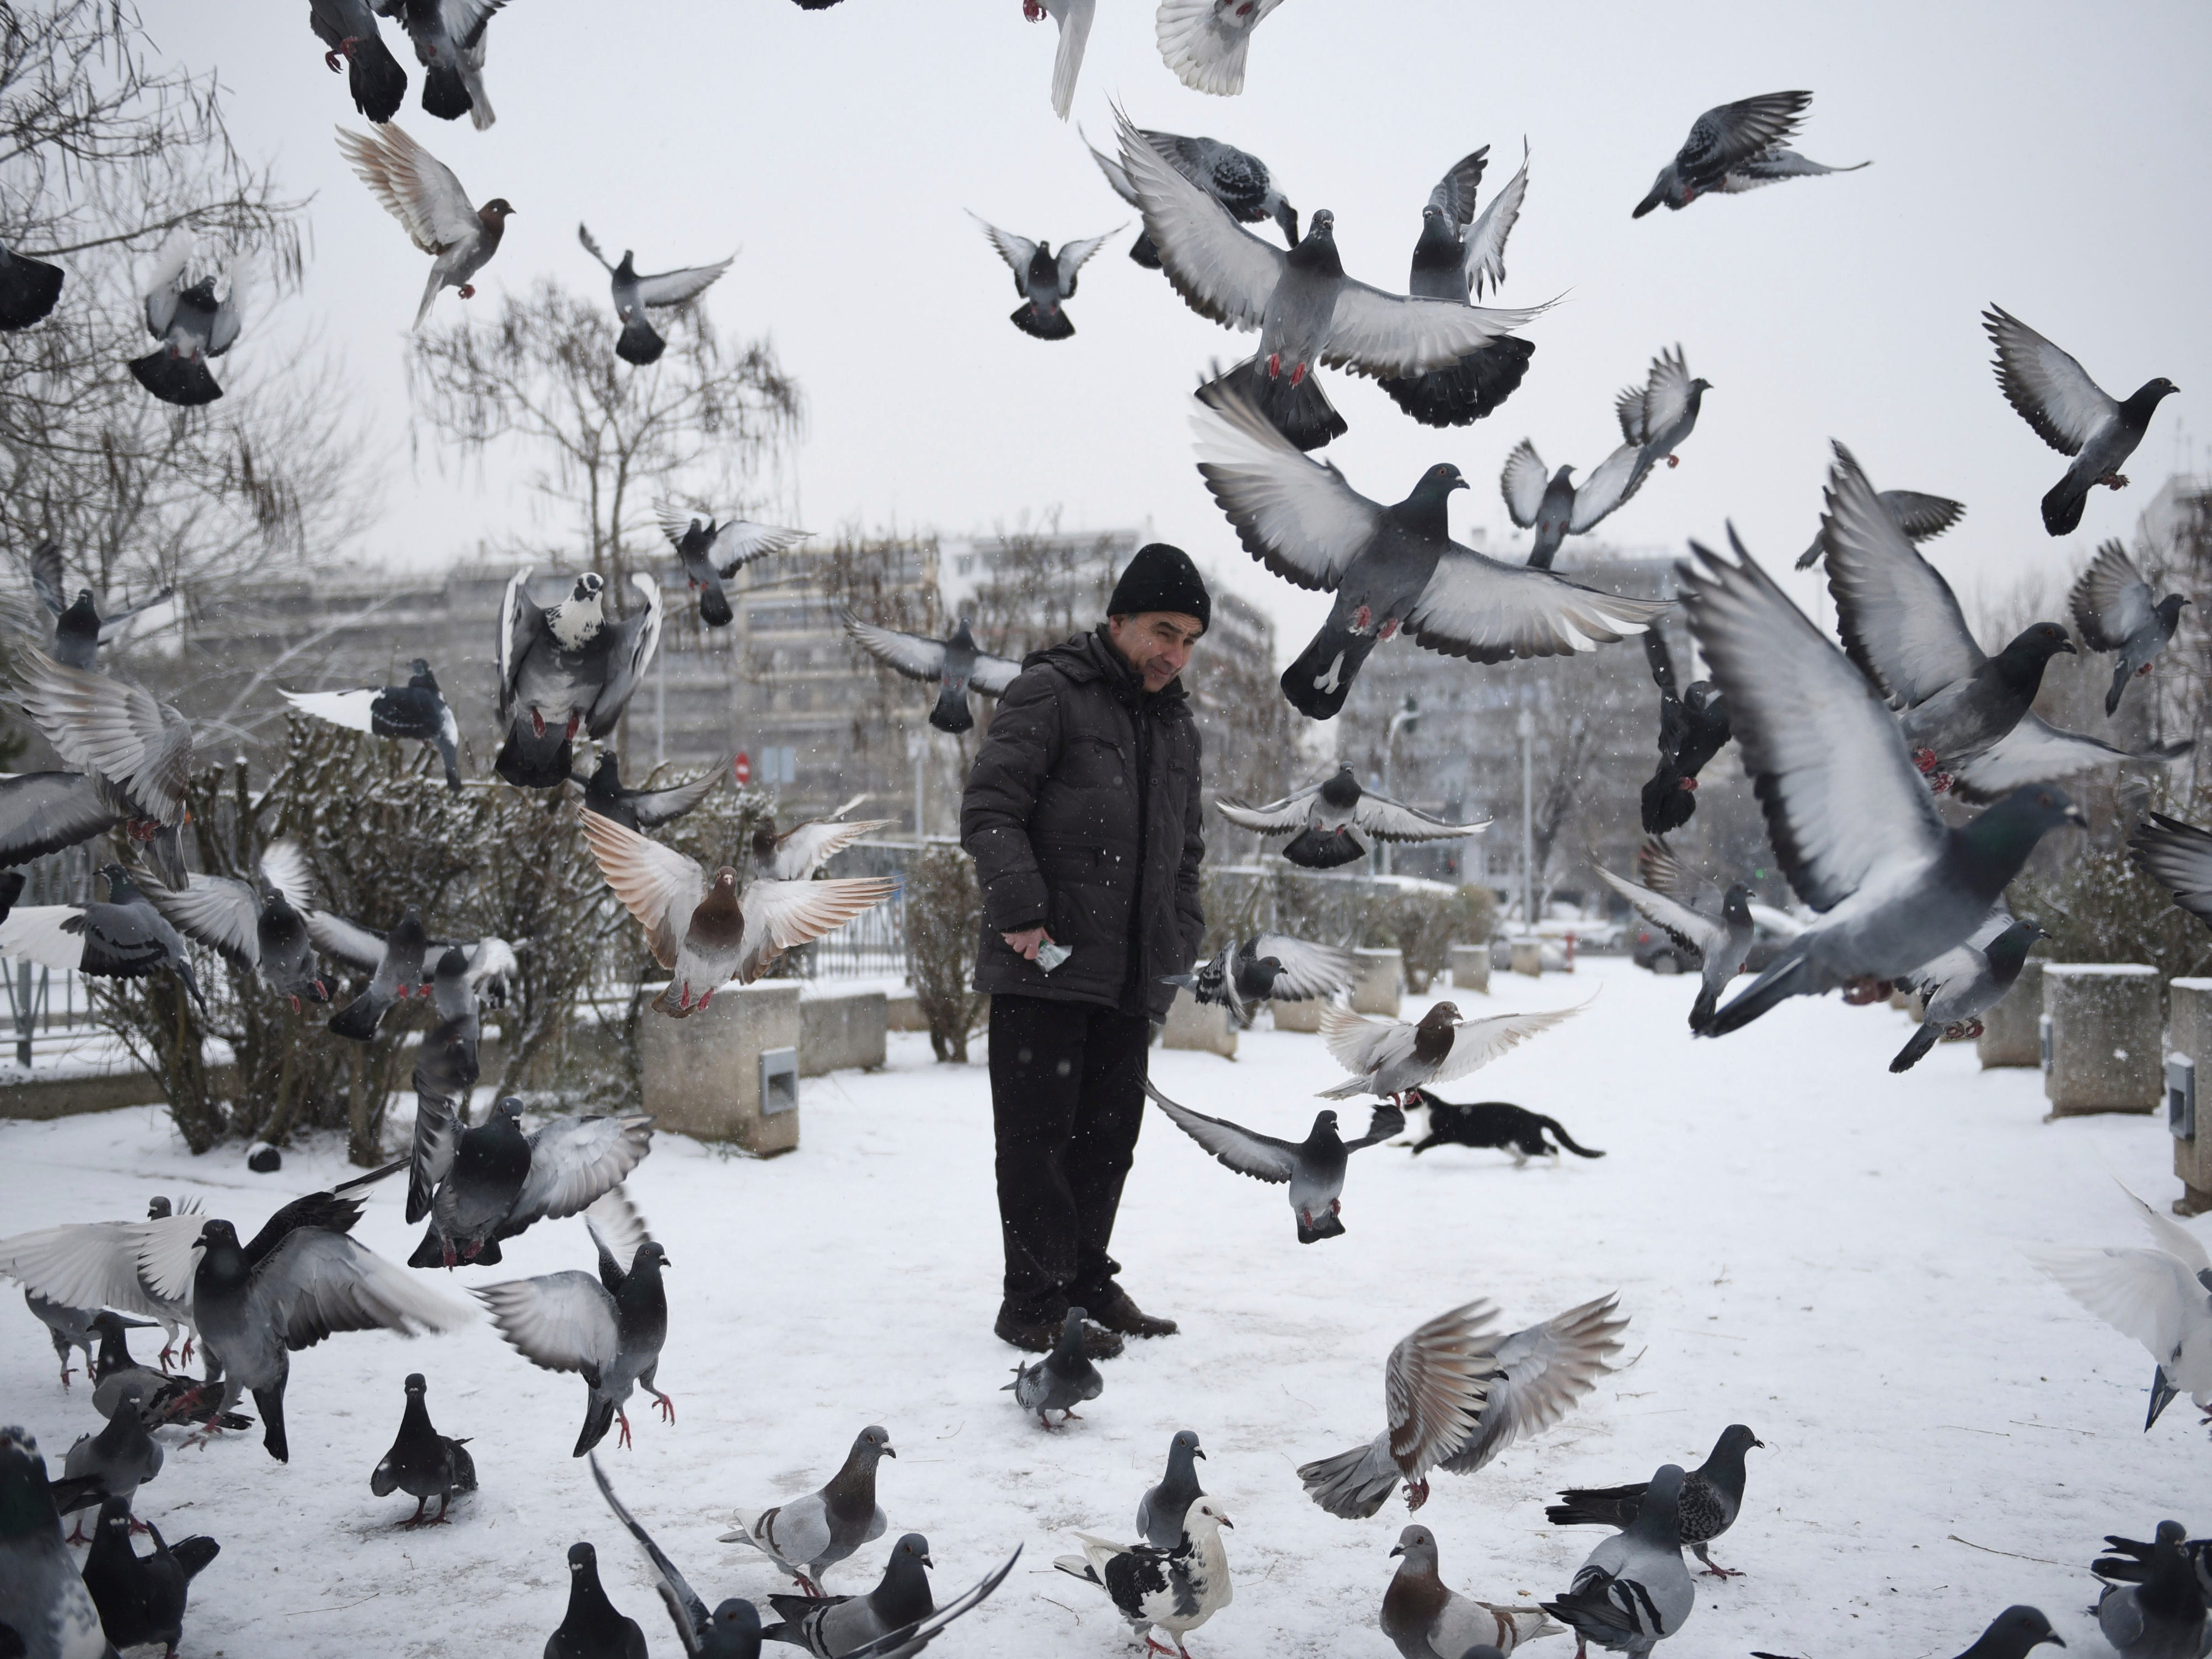 Pigeons fly in front of a man after a snowfall at the northern port city of Thessaloniki, Greece,   Jan 9. 2019.